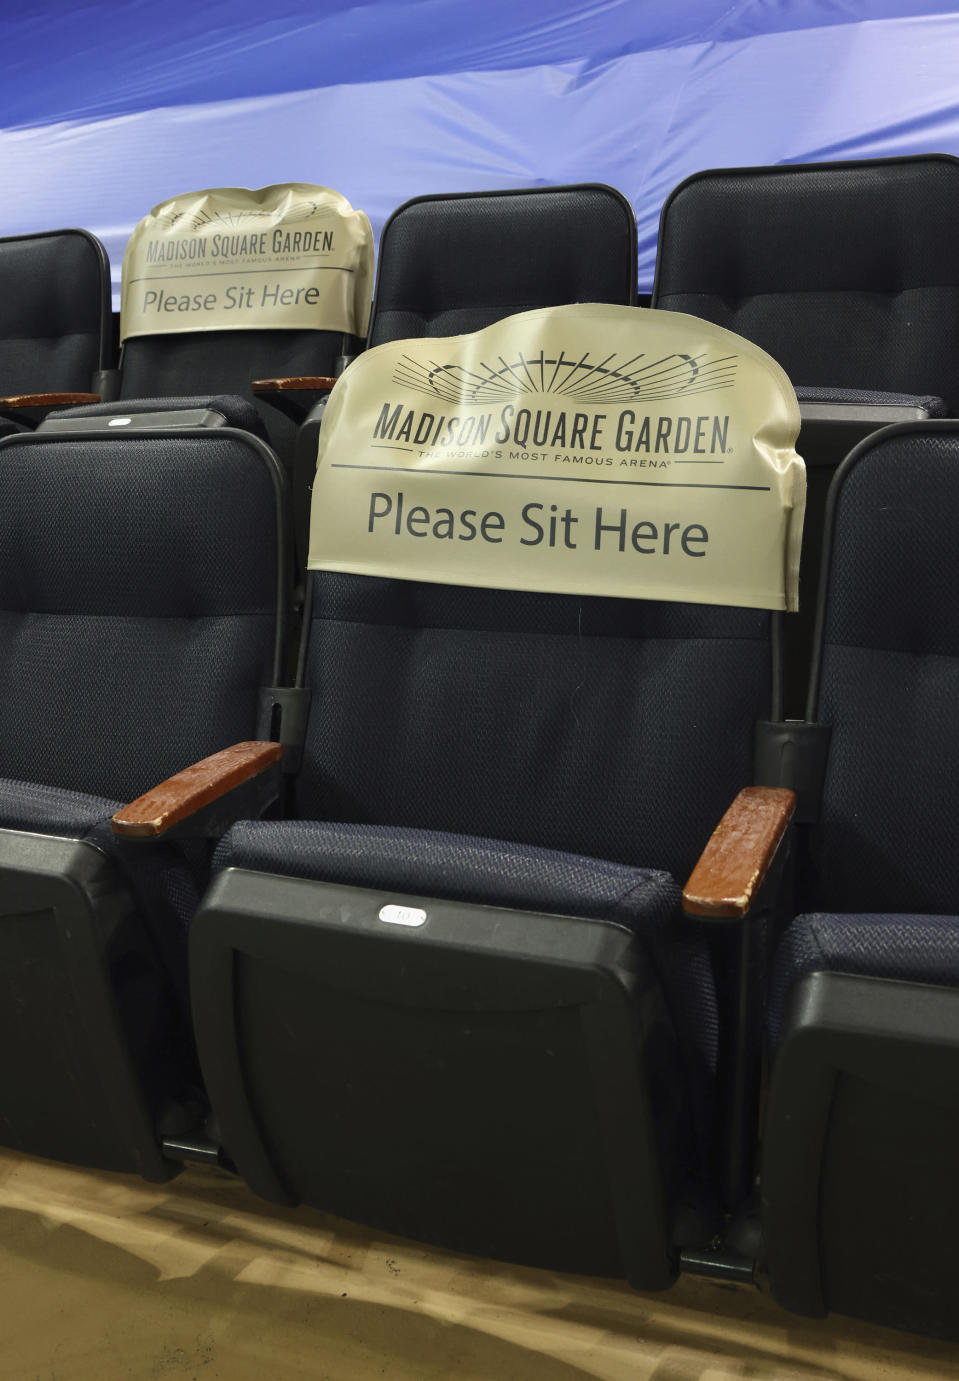 Seats are earmarked for fans at future games prior to the NHL hockey game between the New York Rangers and the Boston Bruins at Madison Square Garden Wednesday, Feb. 10, 2021, in New York. New York State announced today that arenas can re-open on Feb. 23 at 10% occupancy. (Bruce Bennett/Pool Photo via AP)